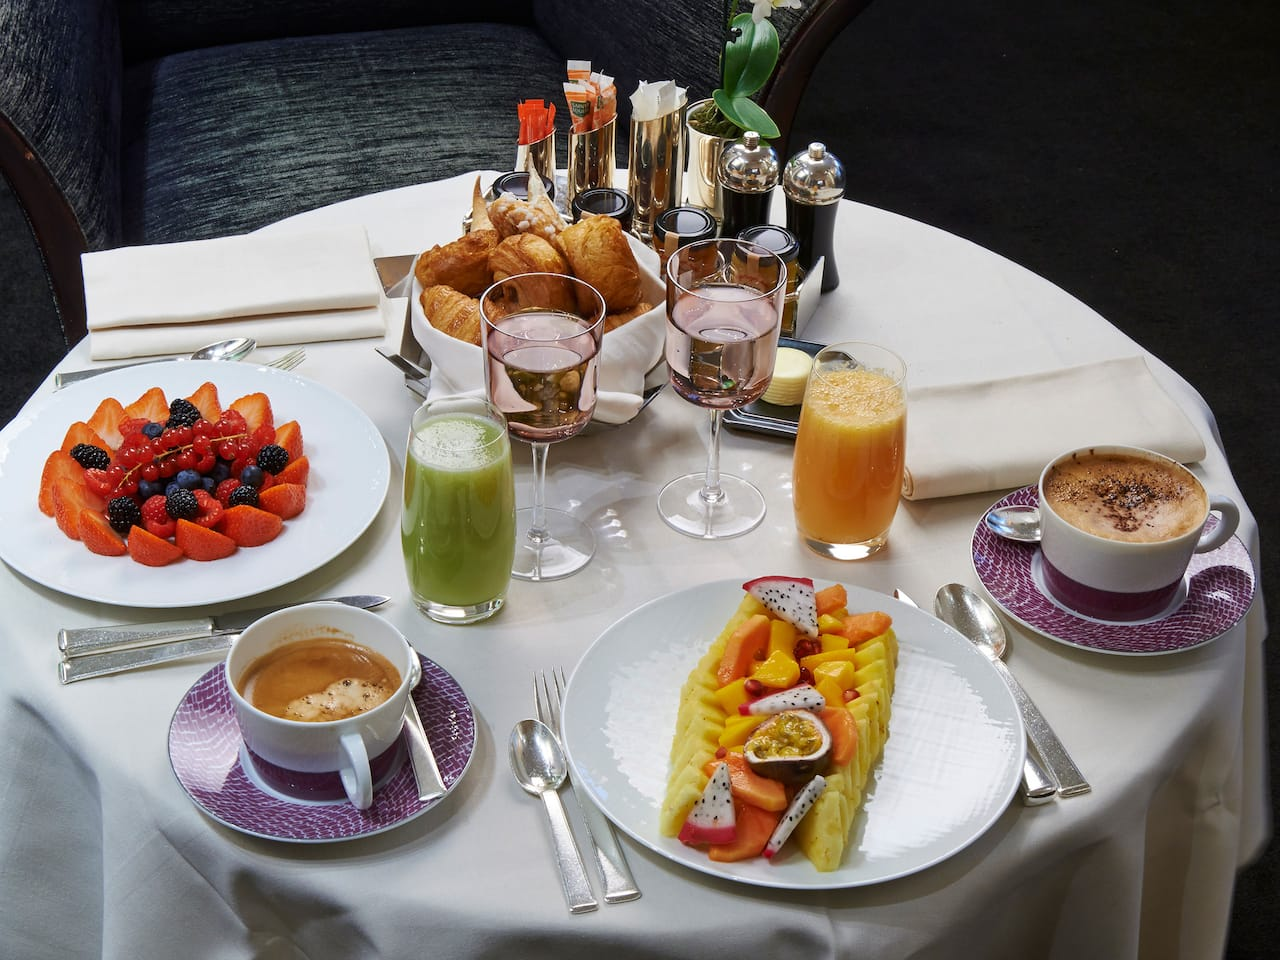 Breakfast in Bed Room service at 5* Hotel Park Hyatt Paris-Vendôme